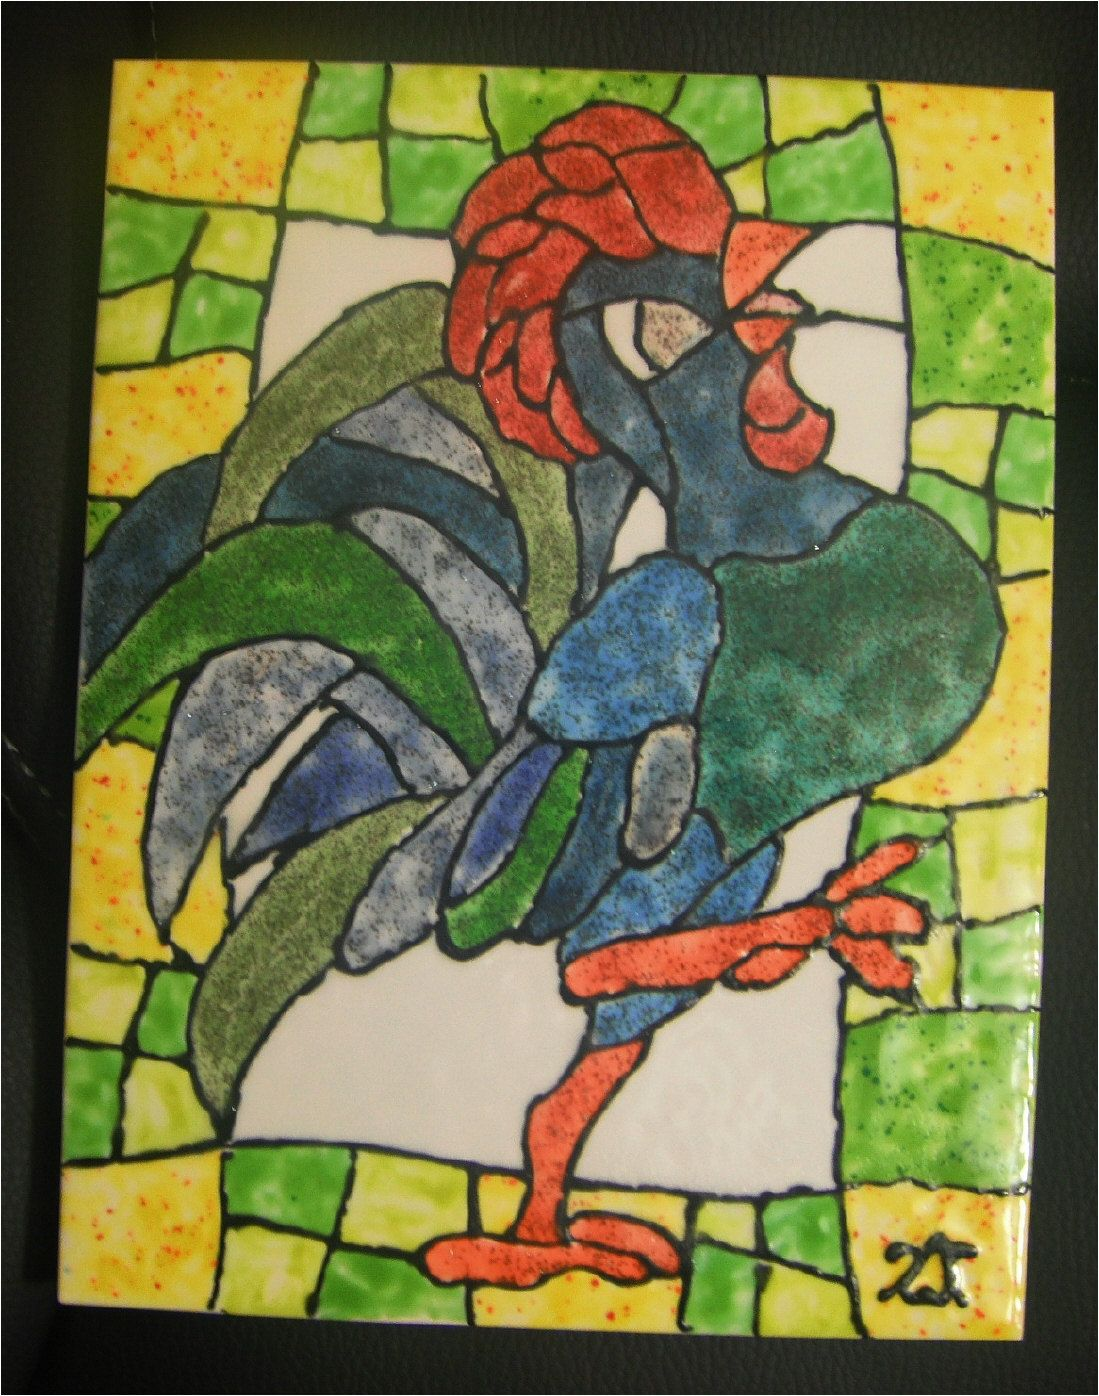 Hand Painted Decorative Tiles Unique Good Morning Rooster Hand Painted Kiln Fired Decorative Ceramic Review